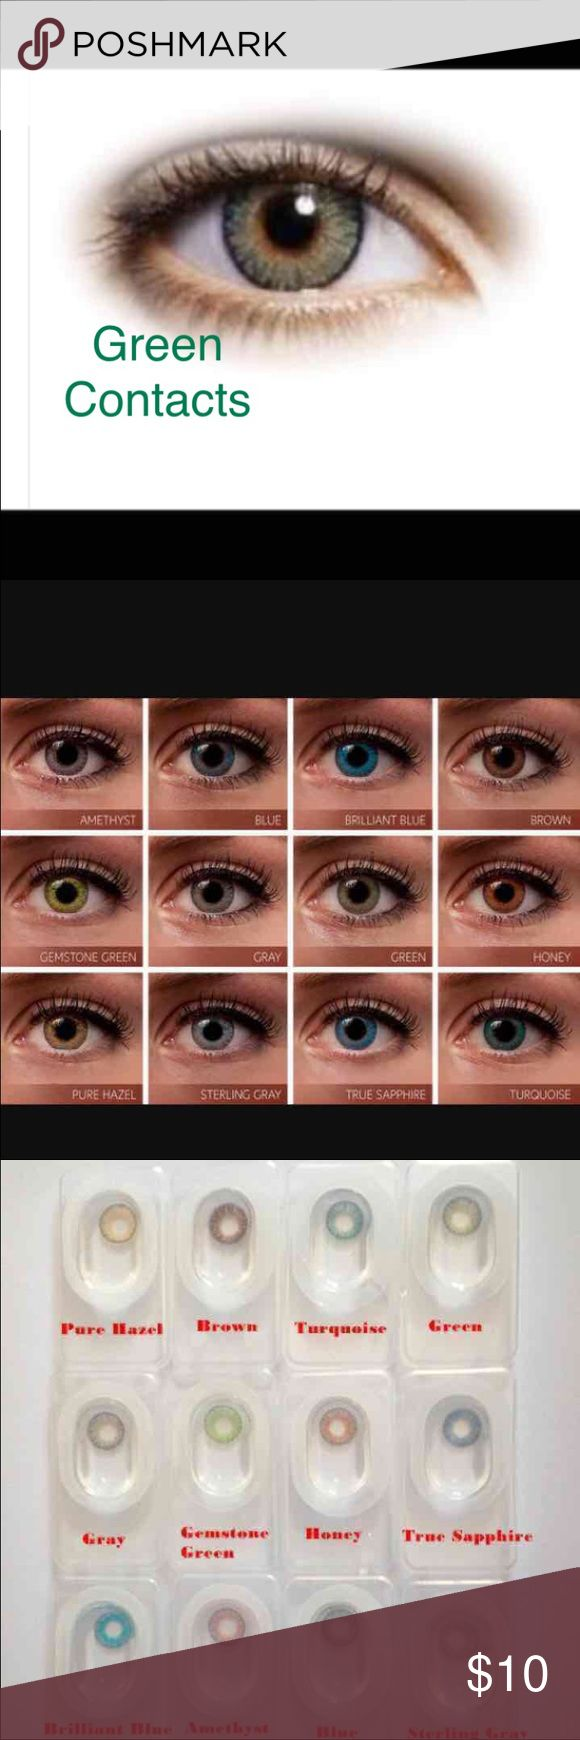 How to order colored contacts online - 1 Pair Green Colored Contacts Available Colors All Colors Please Message Me What Color You Would